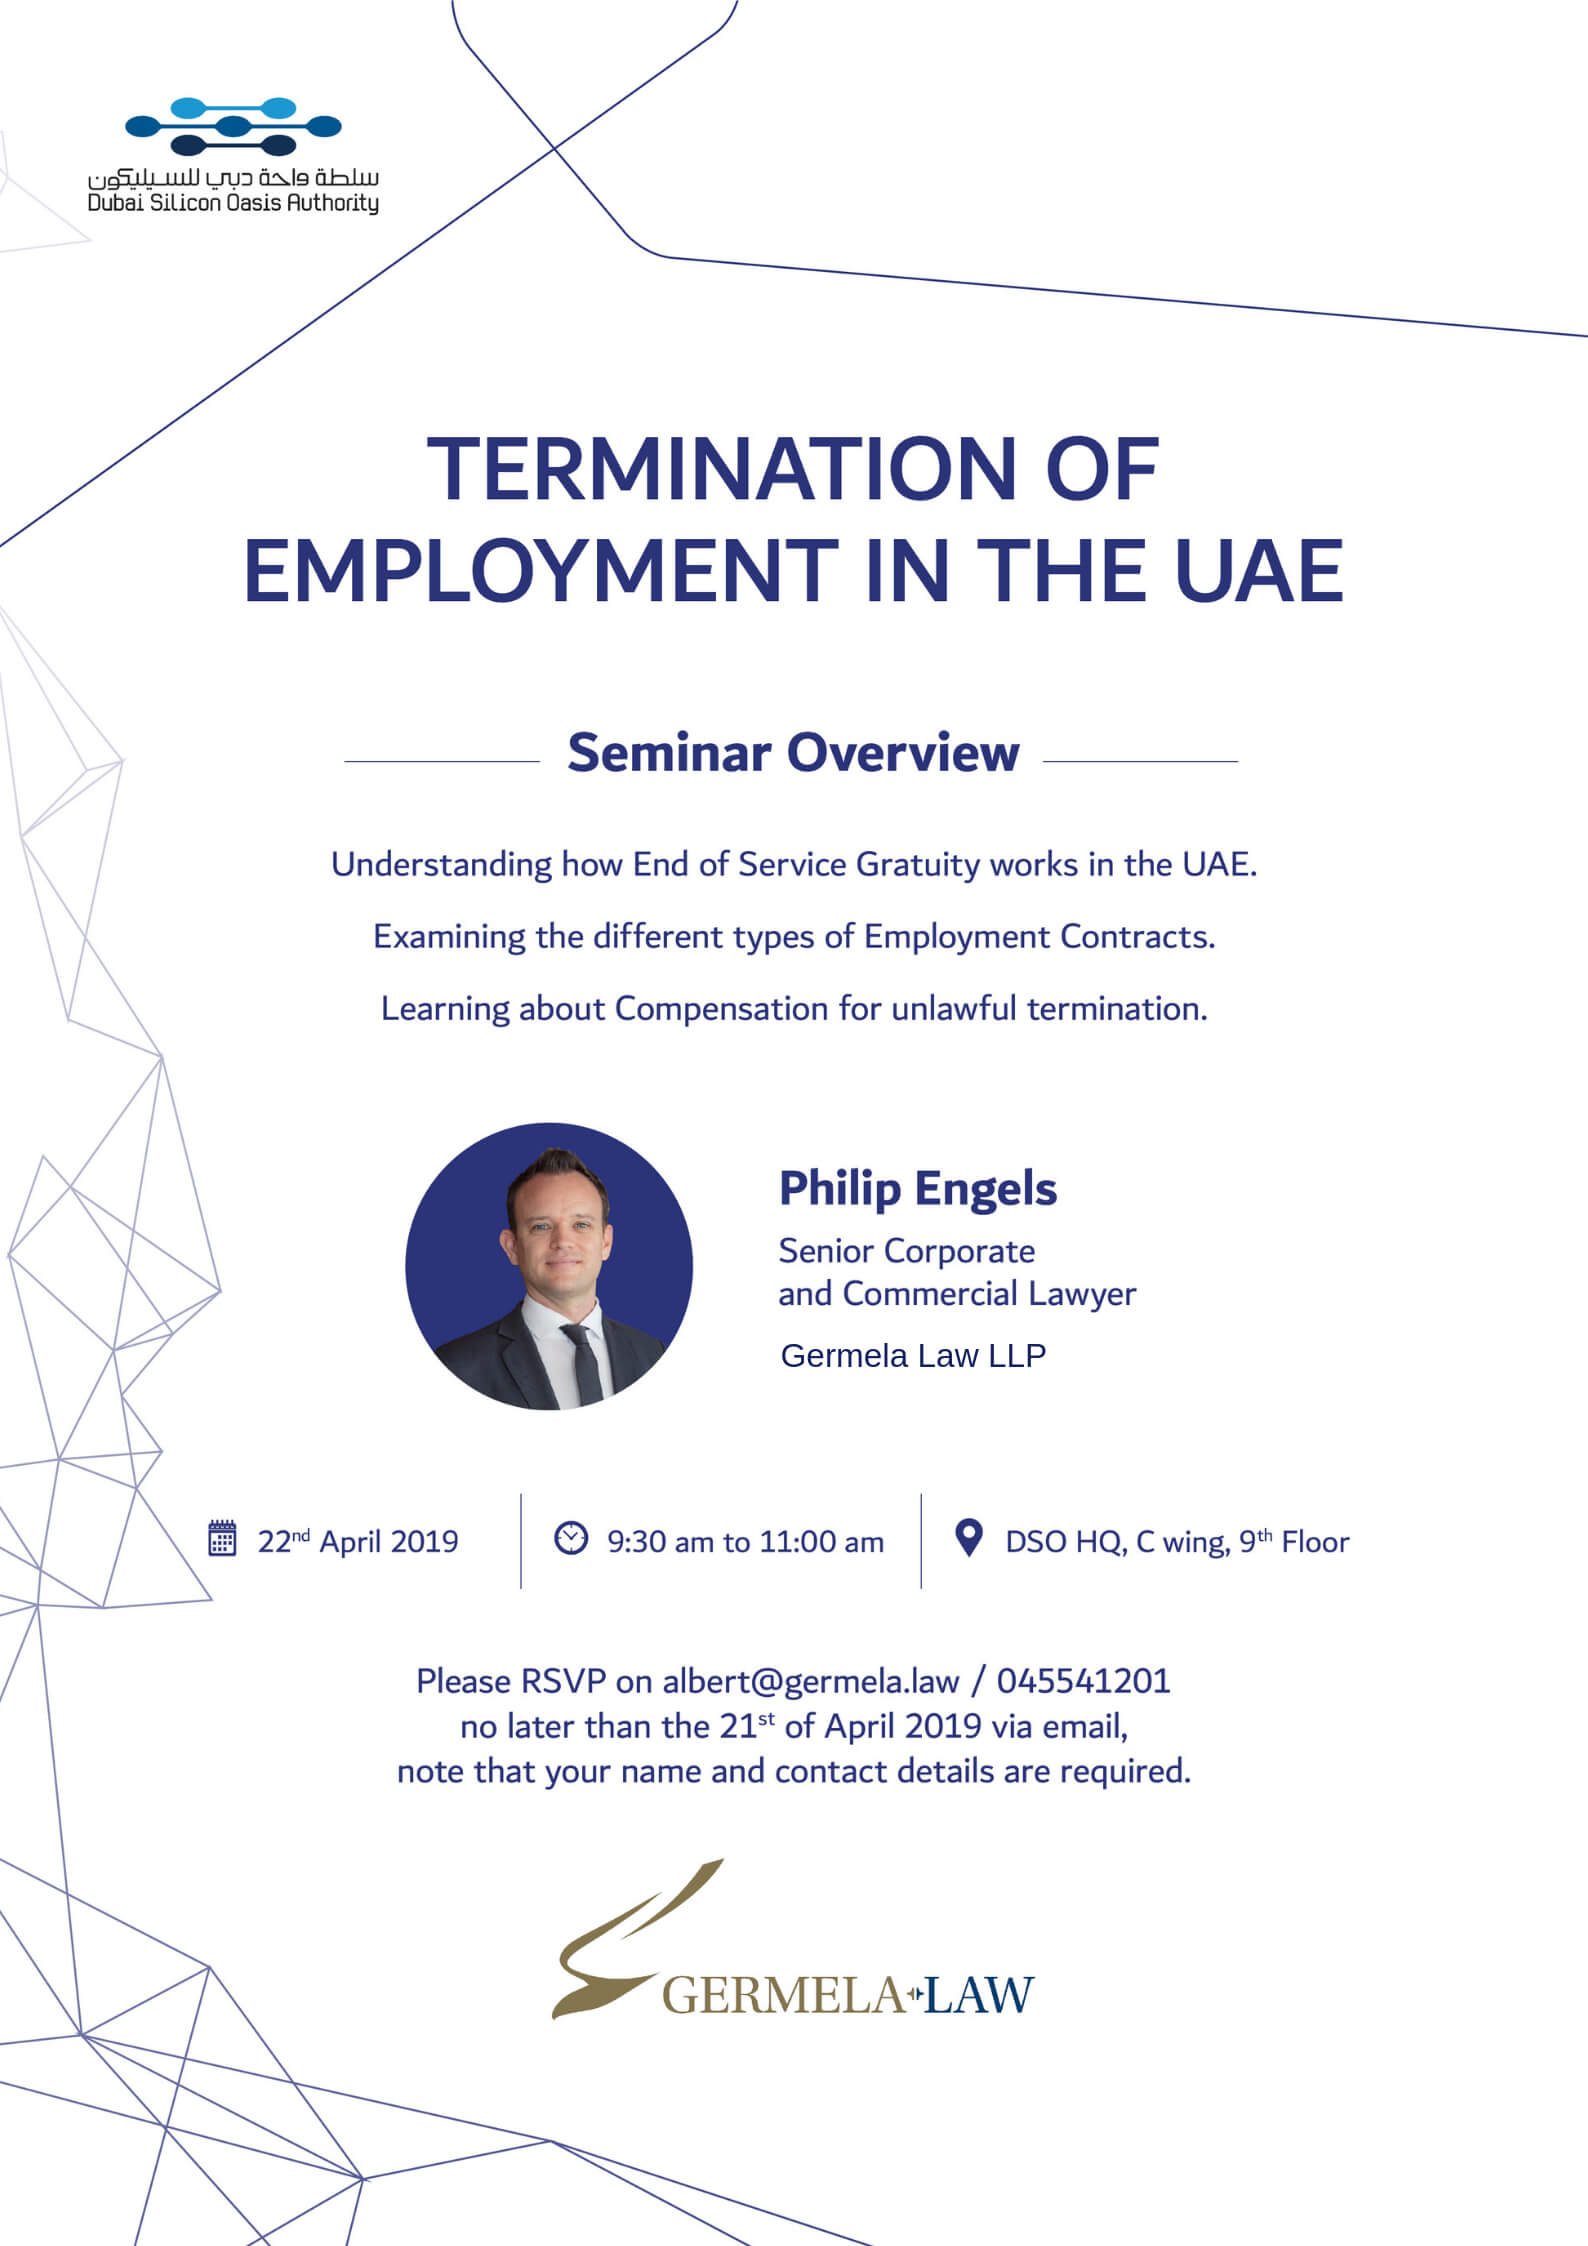 Seminar on Termination of Employment in the UAE